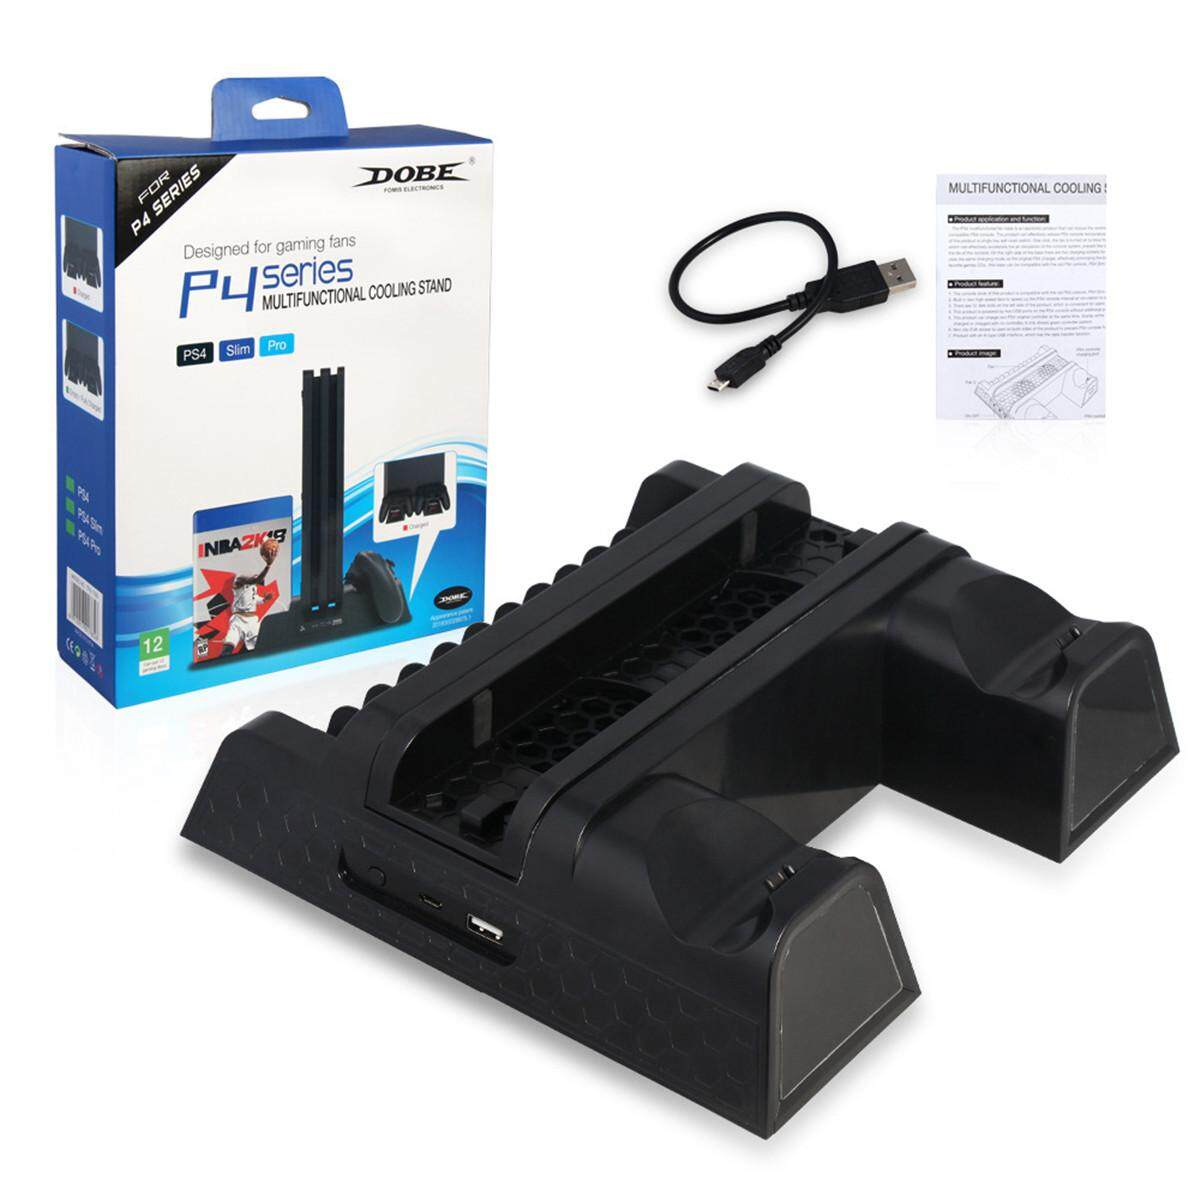 Ps4 Pro Stand Price In Singapore Multifunctional Storage Kit Cooling Fan Station Charger Led Light For Silm Controller